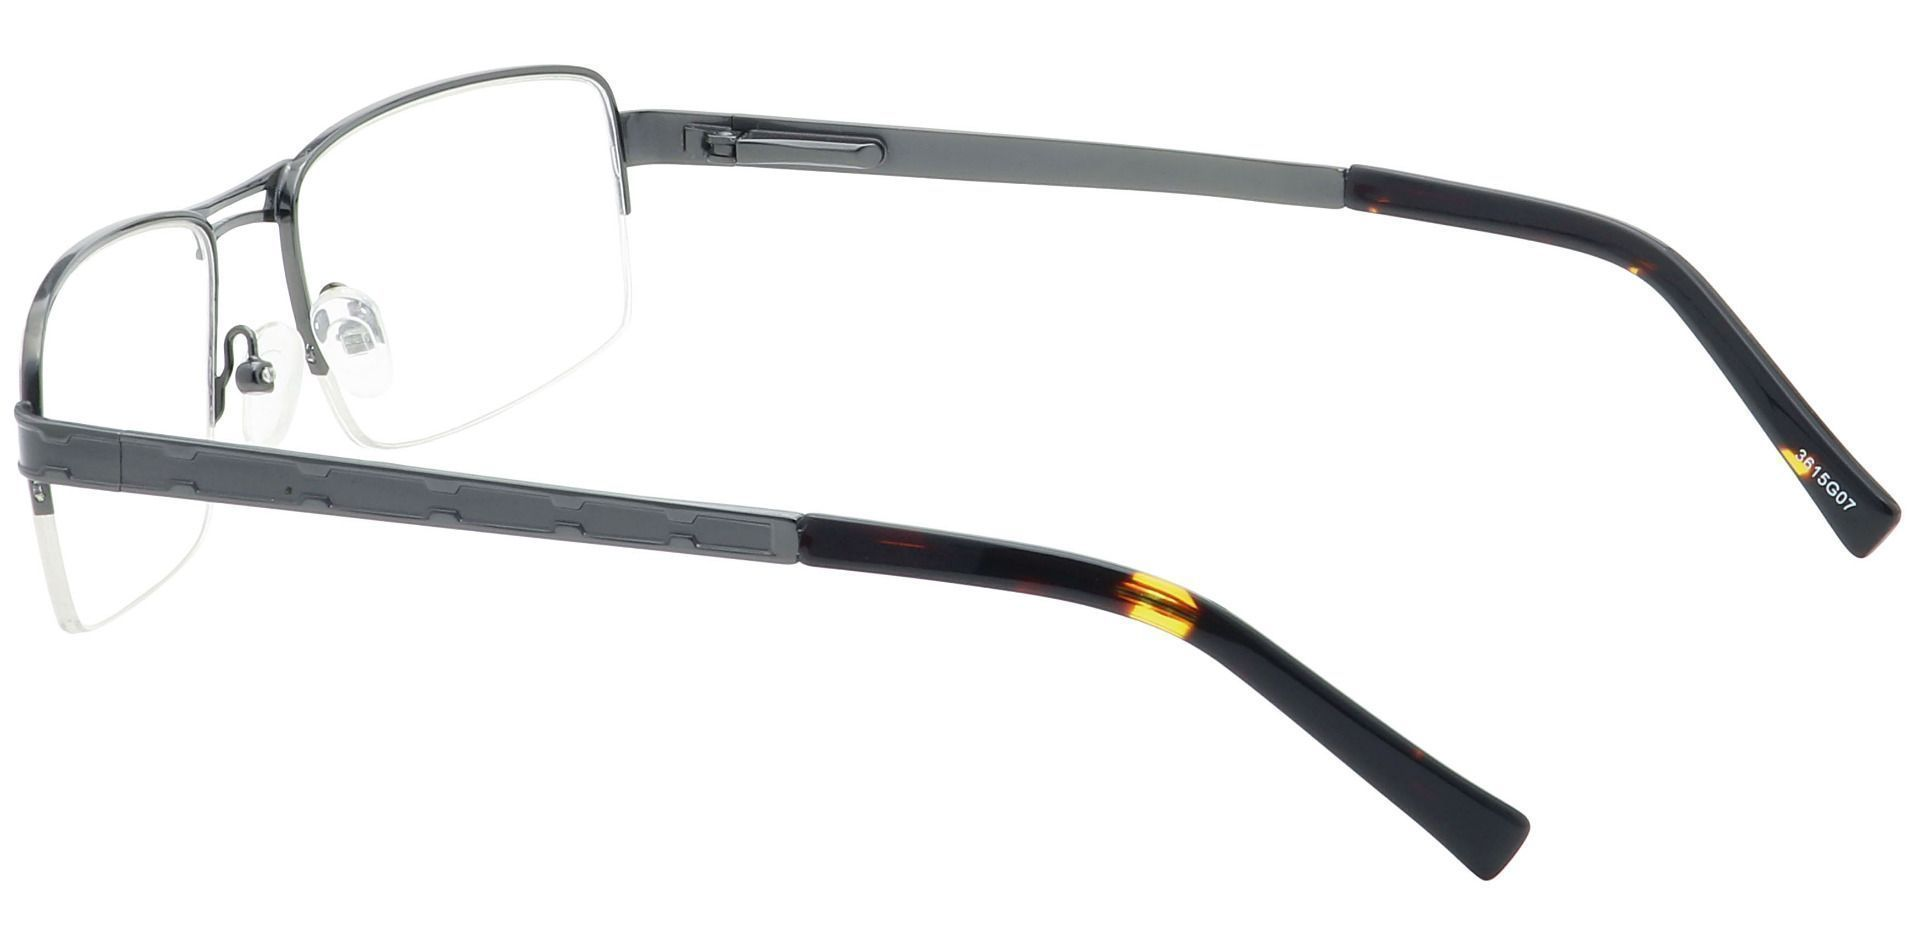 Winter Rectangle Lined Bifocal Glasses - Gray